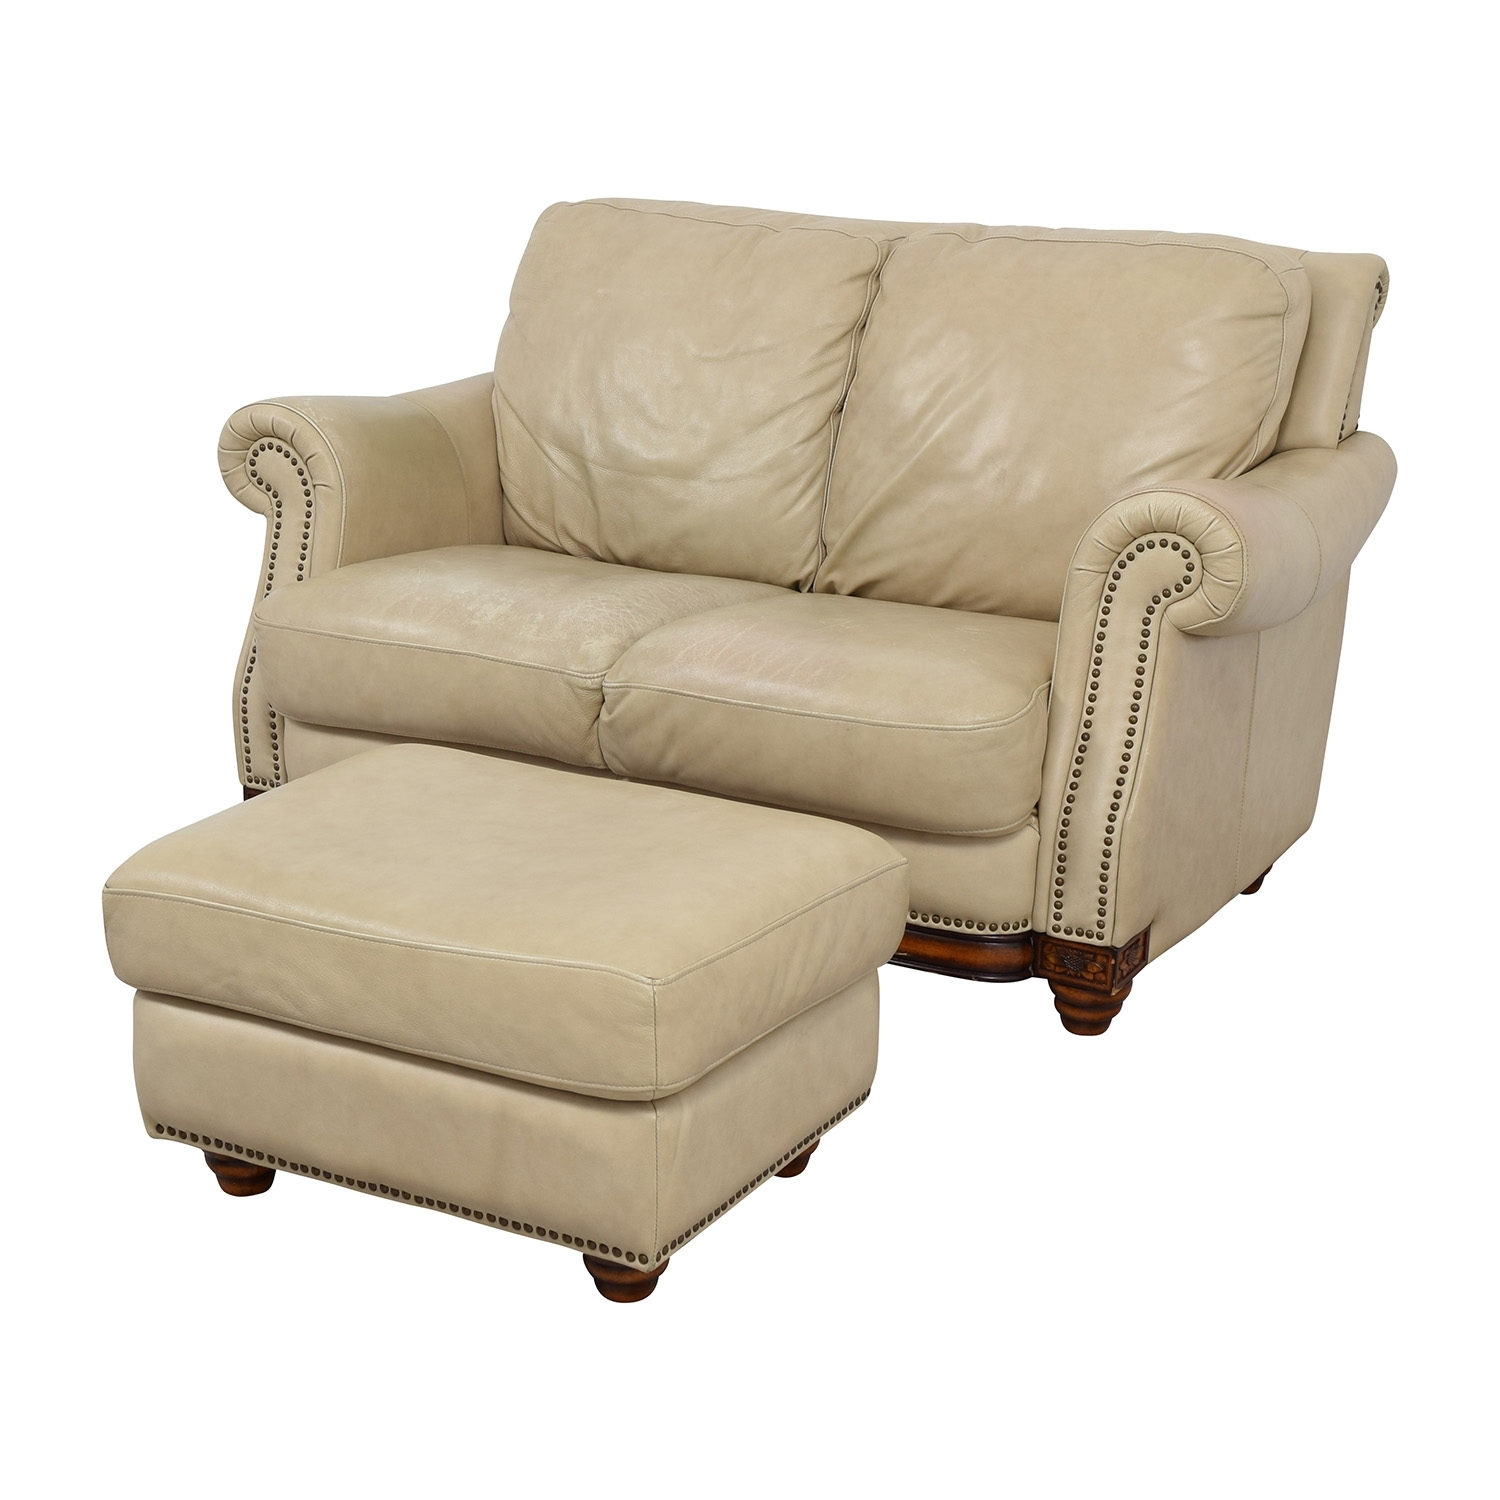 74% Off - Raymour & Flanigan Raymour & Flanigan Studded Tan Leather for Loveseats With Ottoman